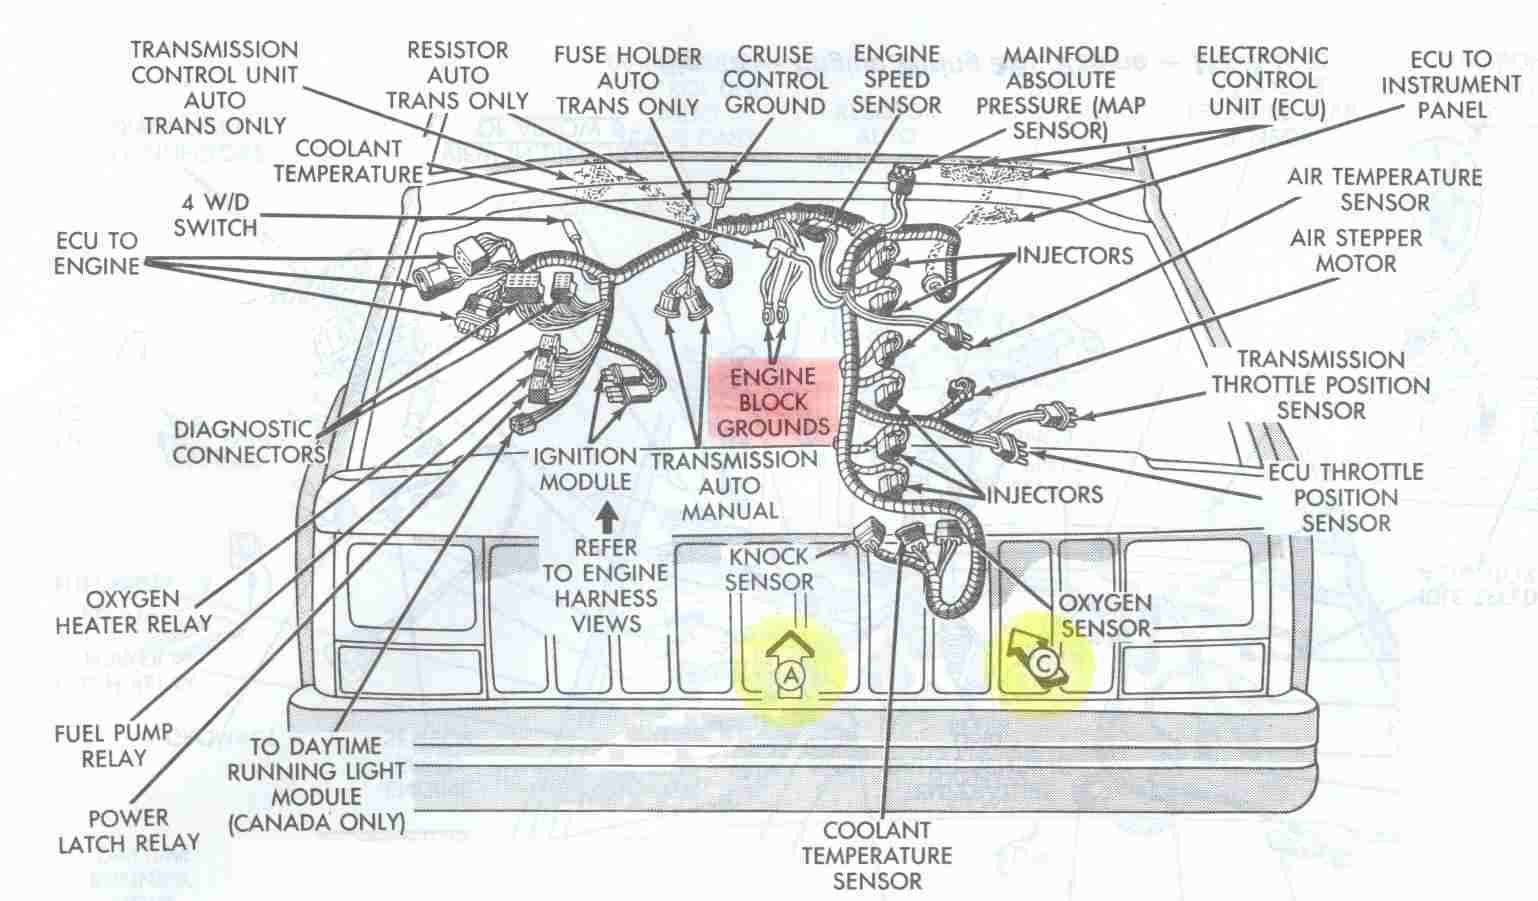 ab0134a7d9e021431187af597eb4aeca engine bay schematic showing major electrical ground points for 88 jeep cherokee wiring diagram at webbmarketing.co